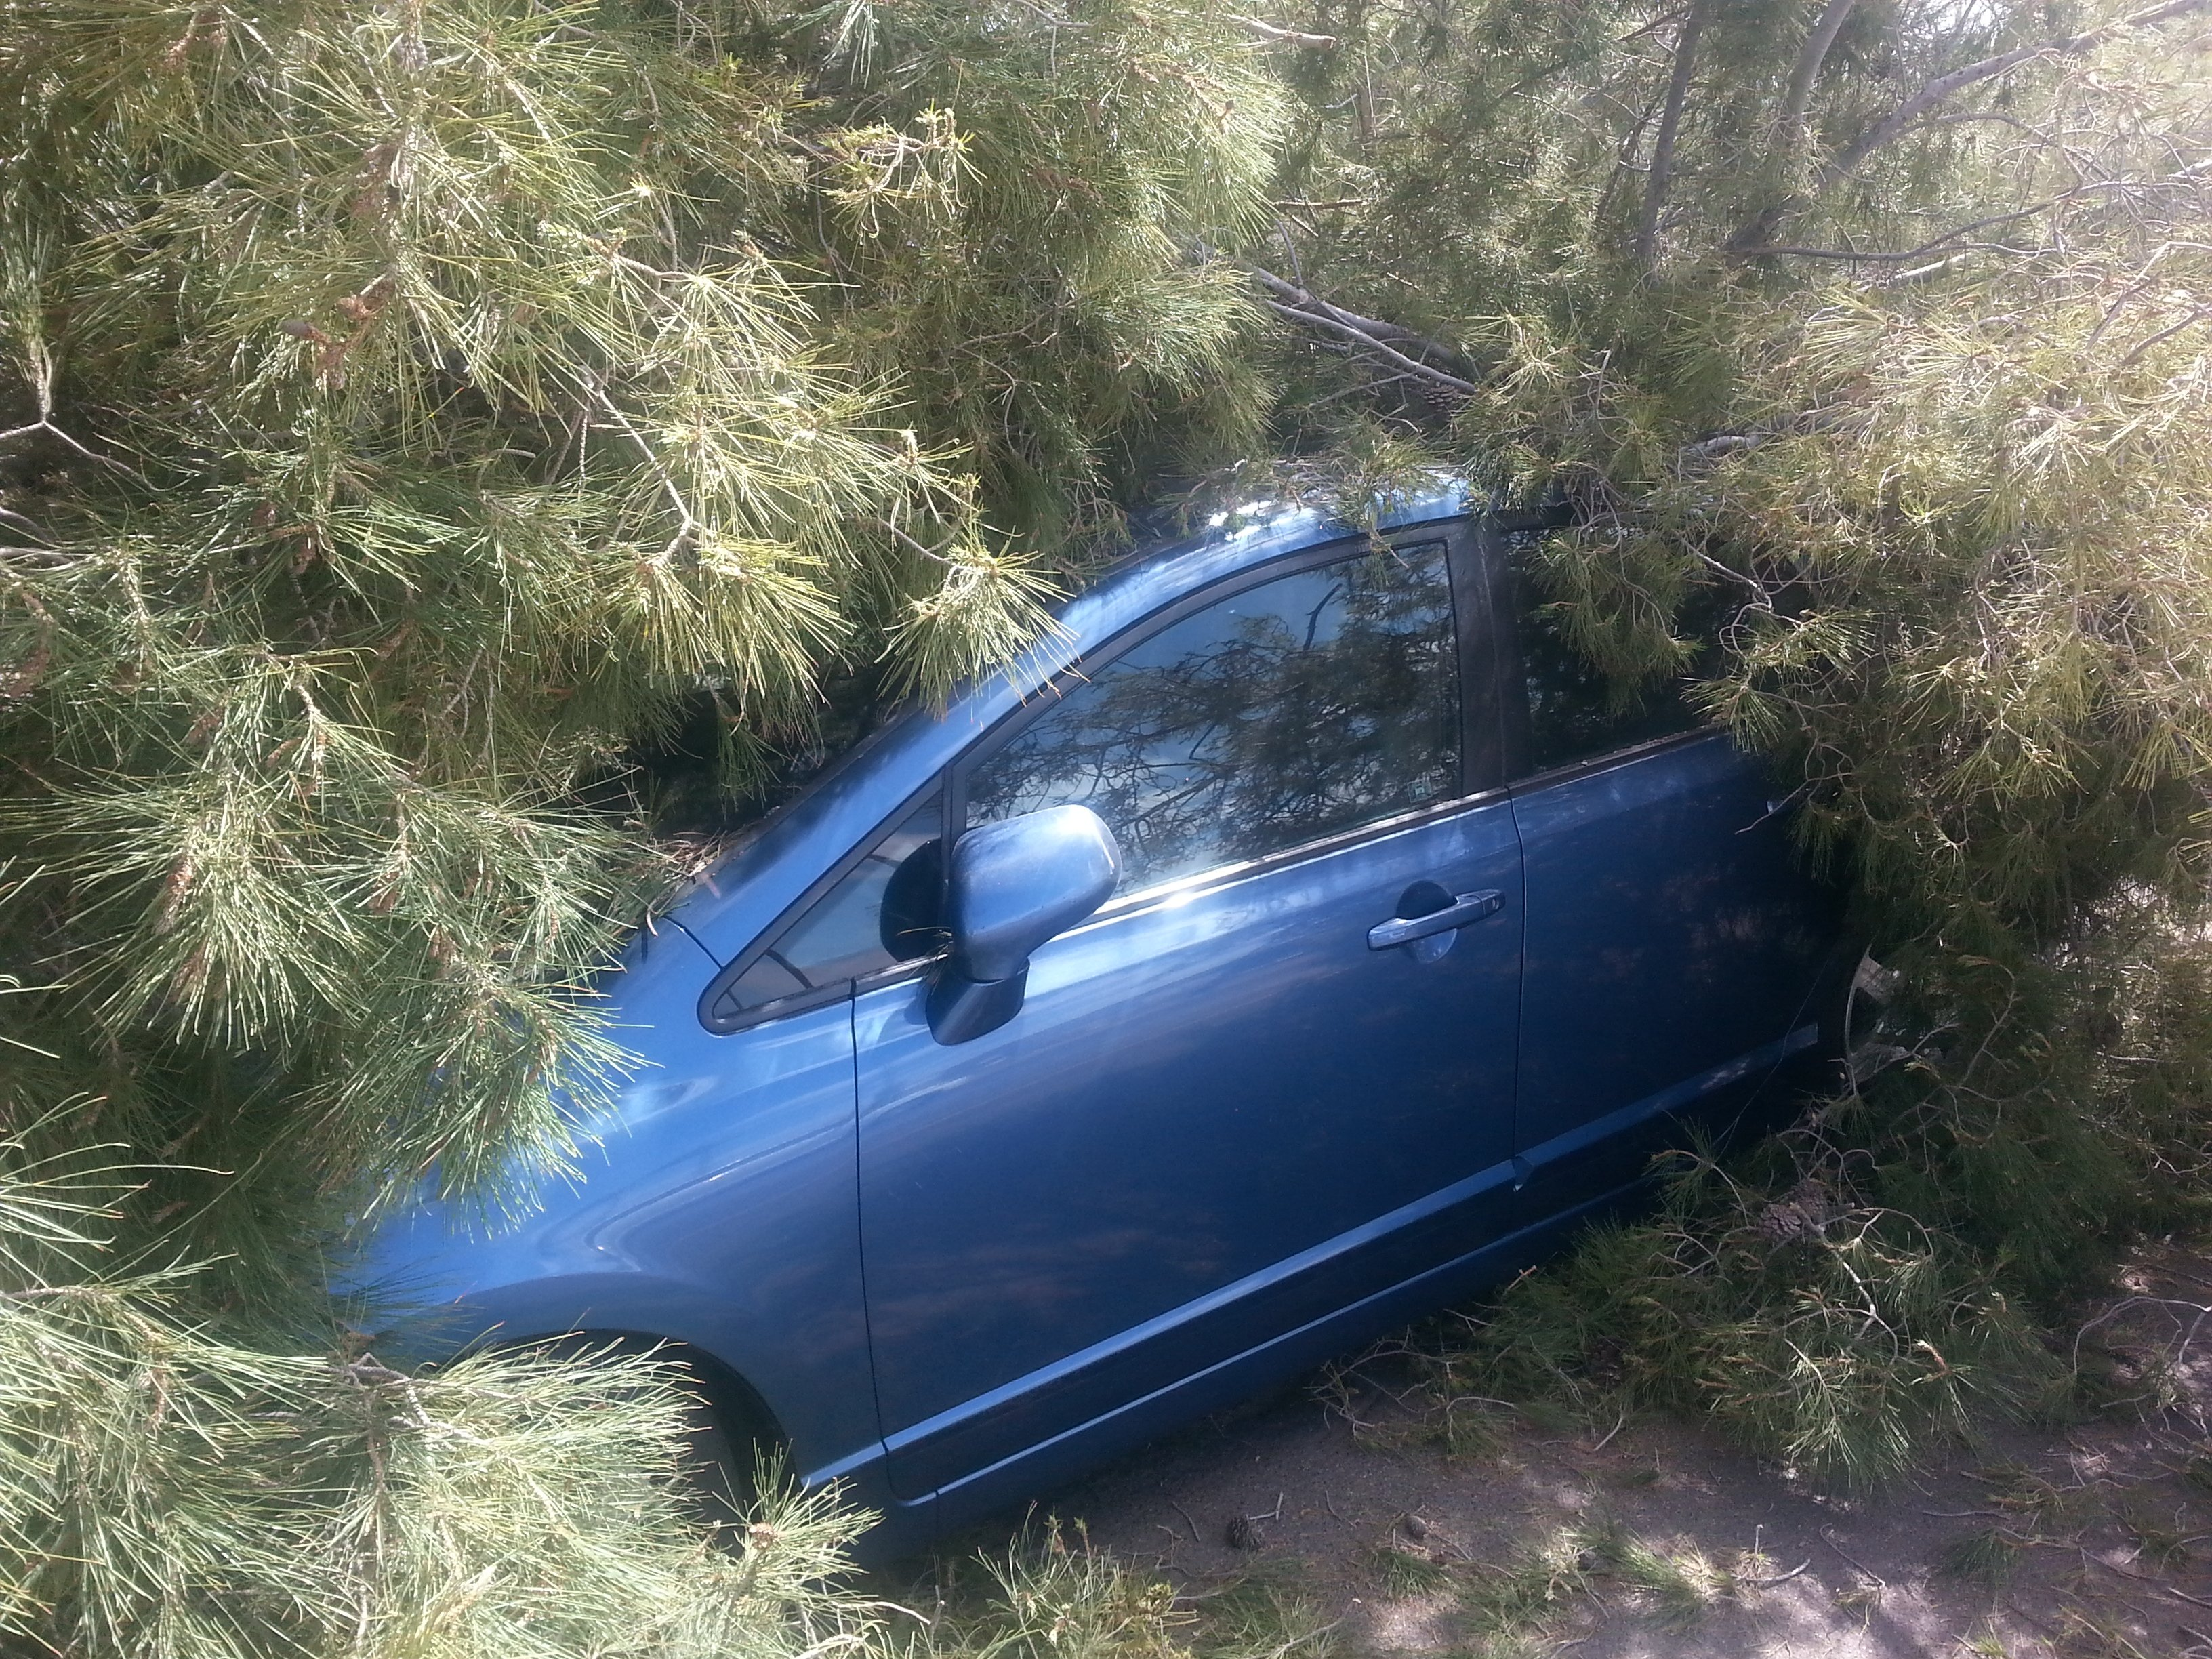 One motorist was in for a big surprise. (Source: Shawn Kline, cbs5az.com)